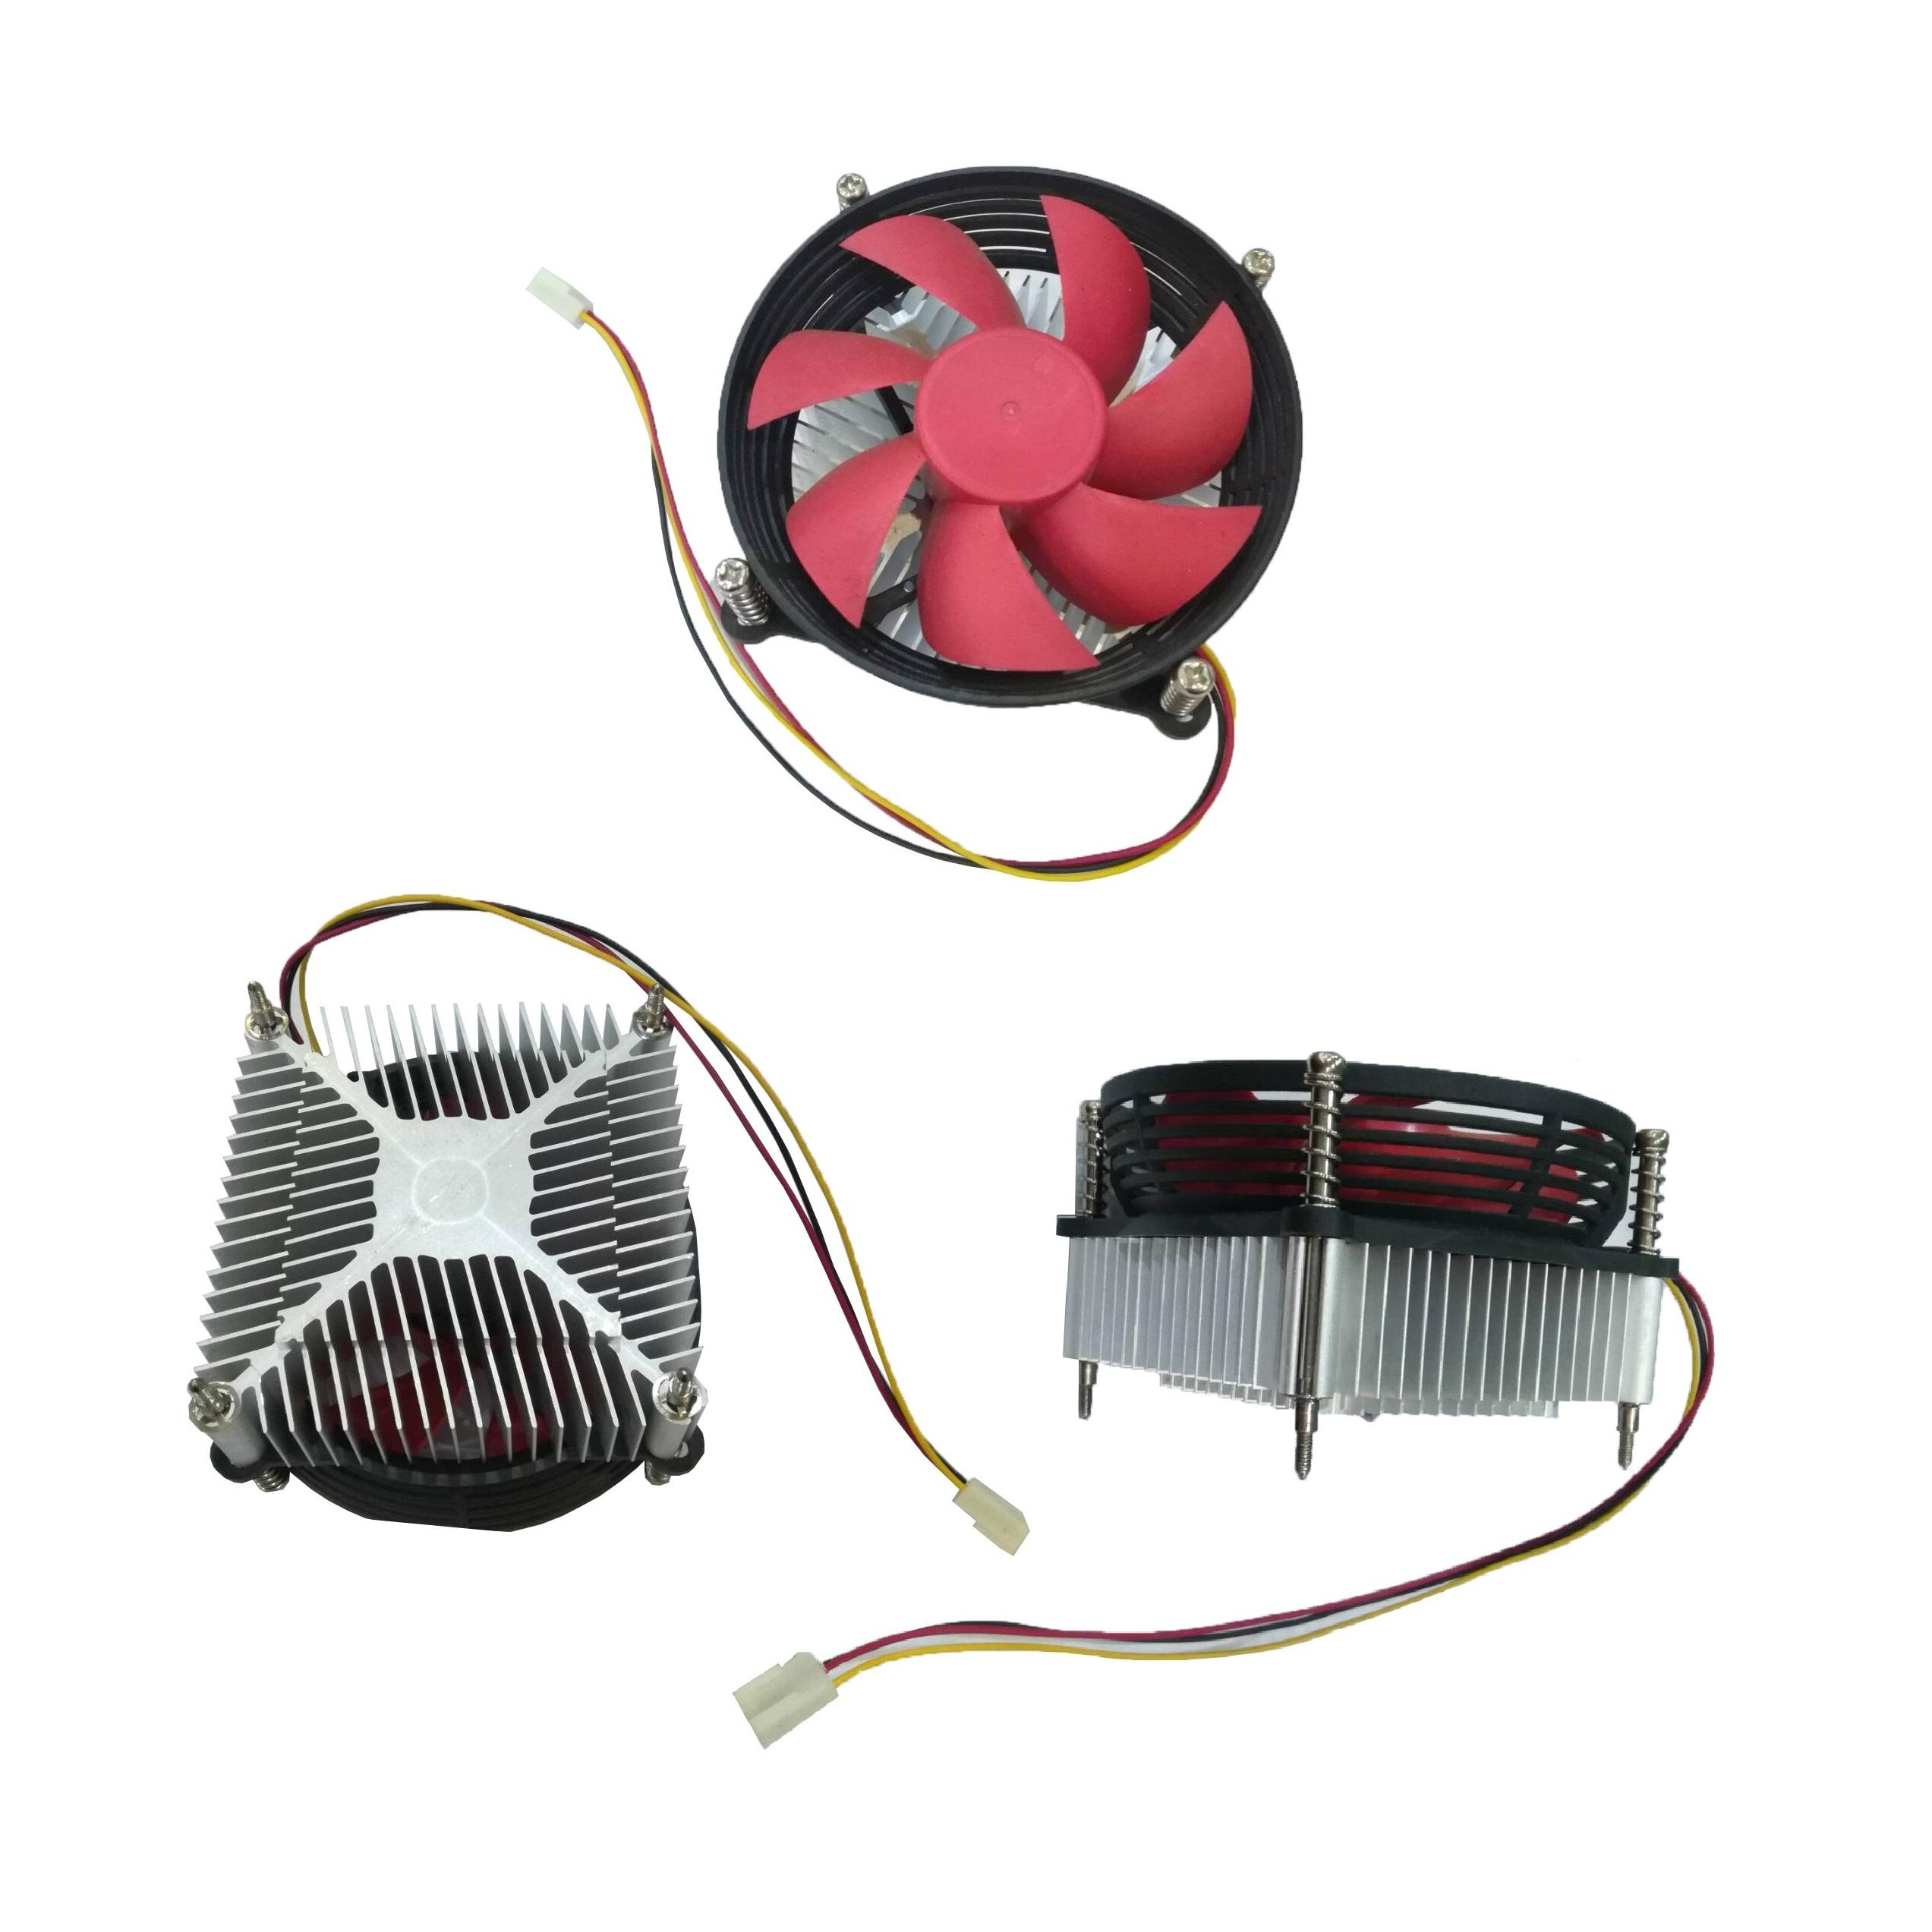 Cpu fan pc air cooler 775 with Black anodized aluminum heatsink and red fan vent stock for deep cooling